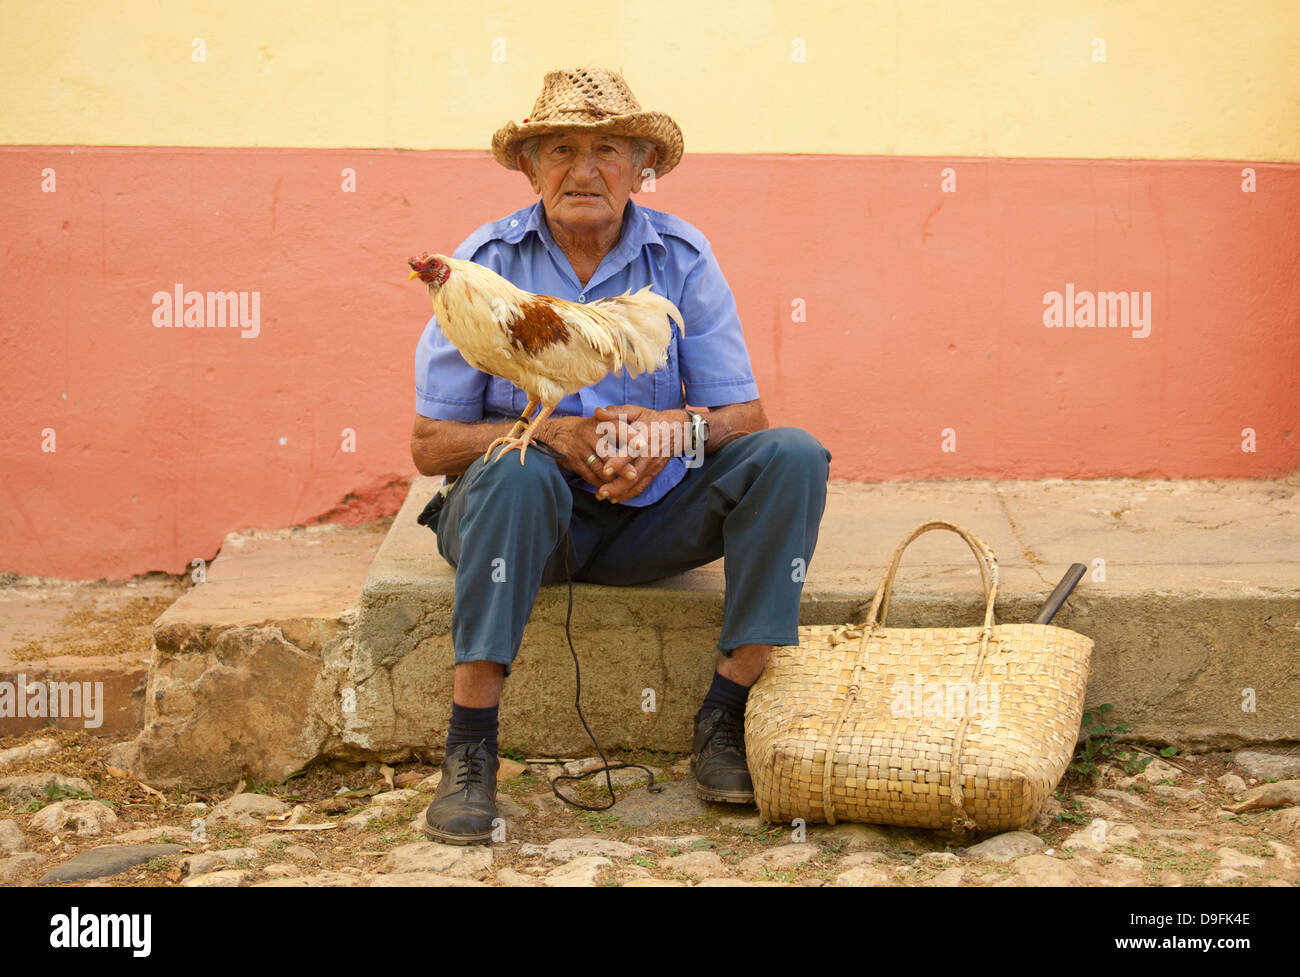 Local man wearing straw hat with cockerel standing on his knee, Trinidad, Cuba, West Indies - Stock Image